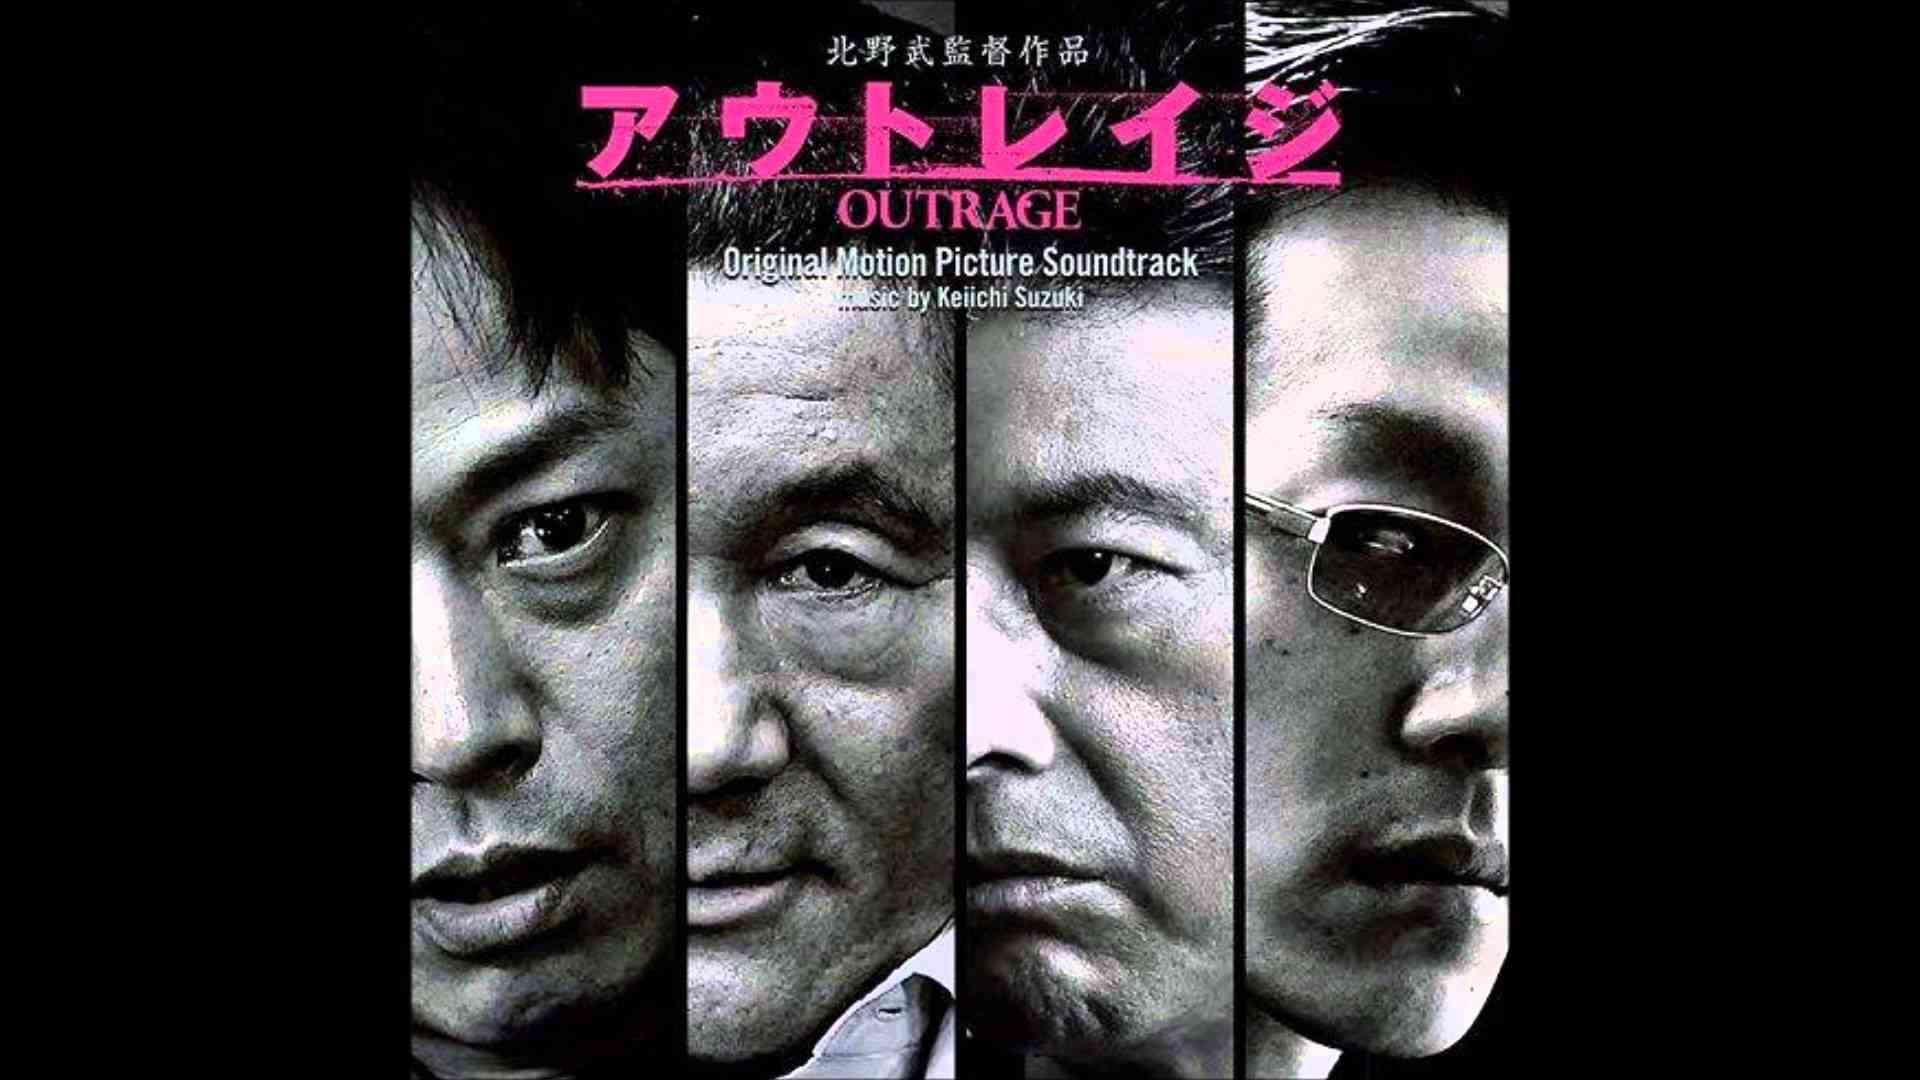 Outrage - Keiichi Suzuki (Outrage Soundtrack) - YouTube